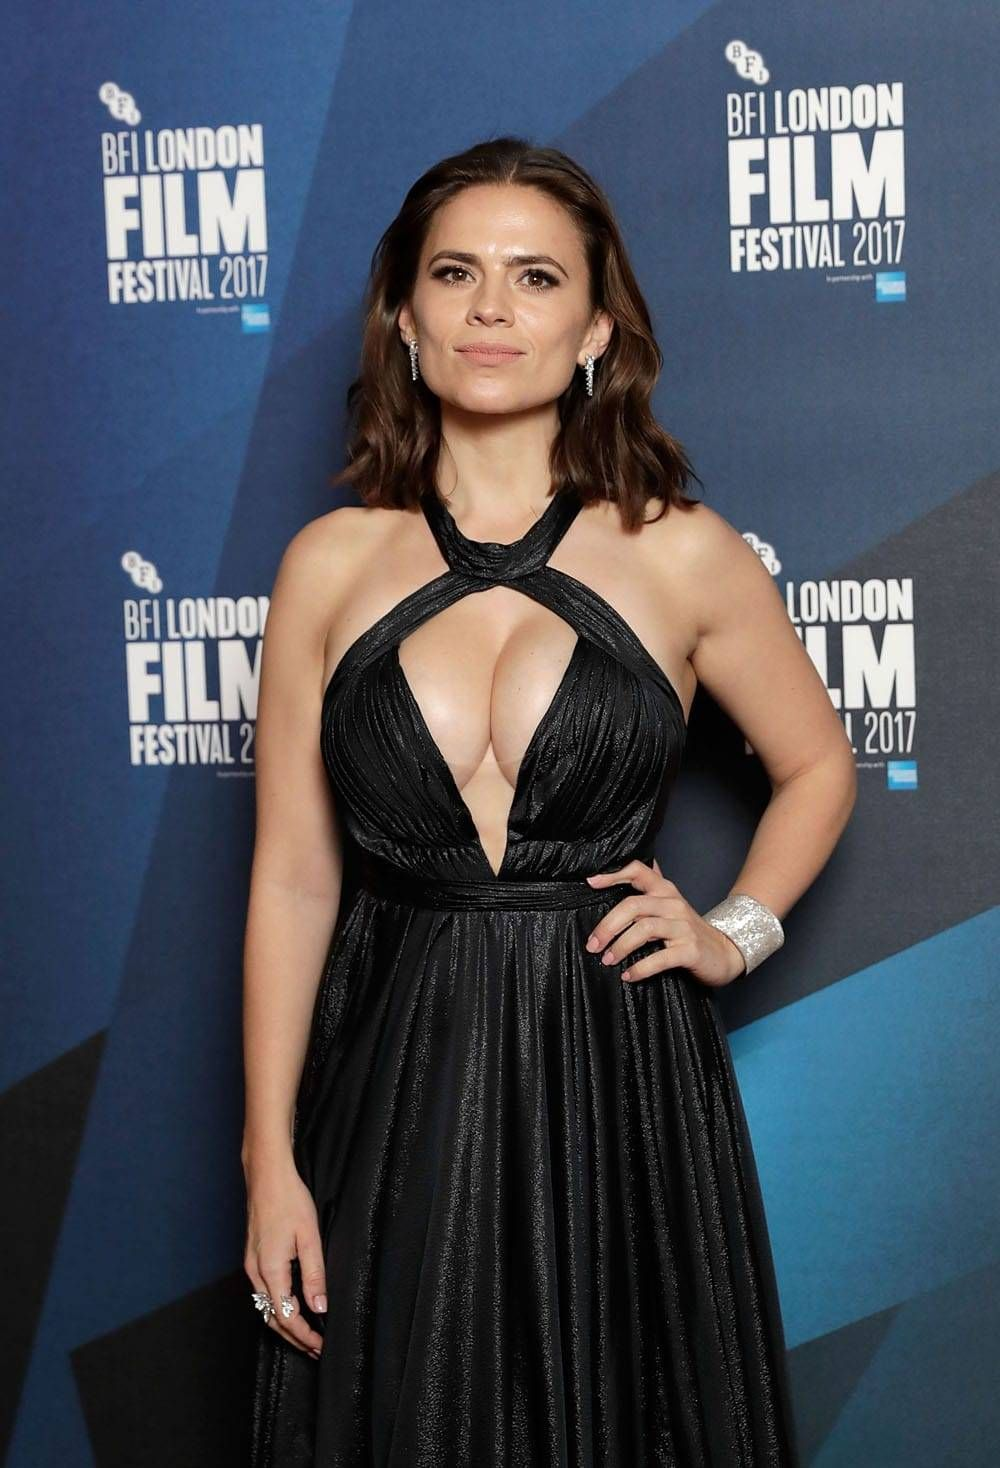 Forum on this topic: Karin Argoud, hayley-atwell-born-1982-dual-british-and/